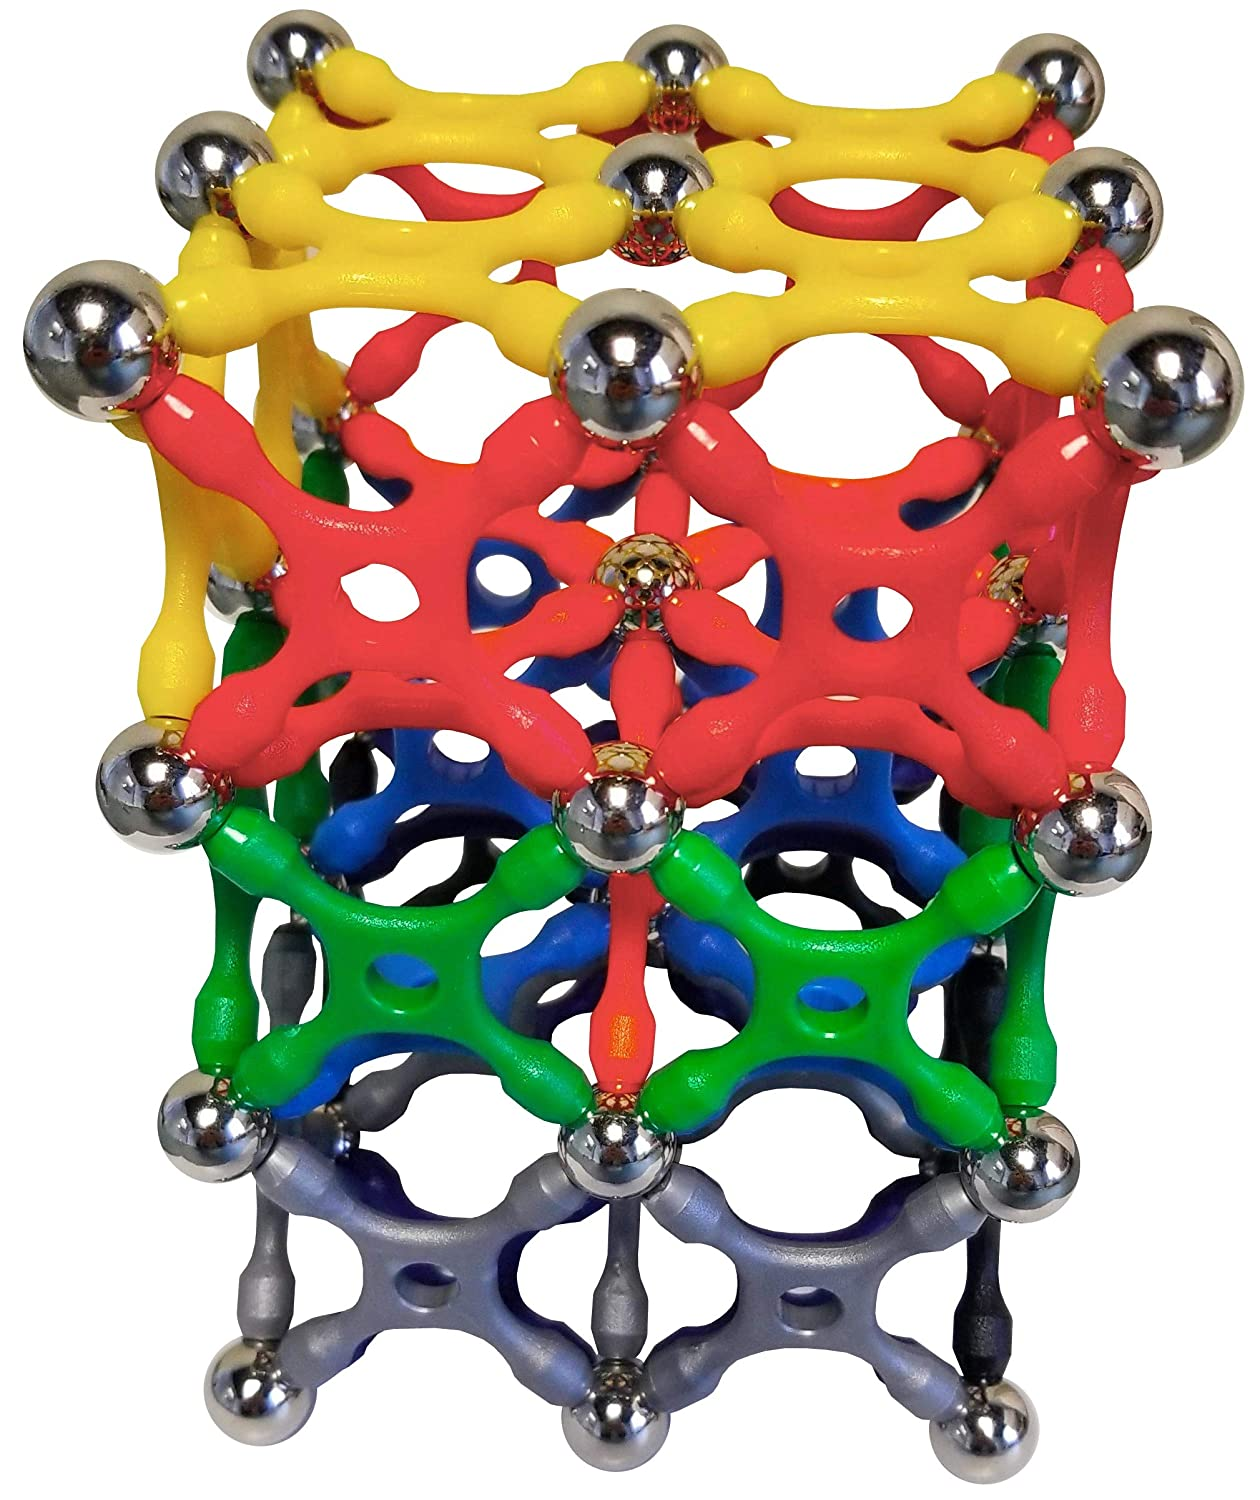 Magz-X 96 Classic Magnetic Building Set consisting of 24 Xs 24 rods and 48 Steel Balls